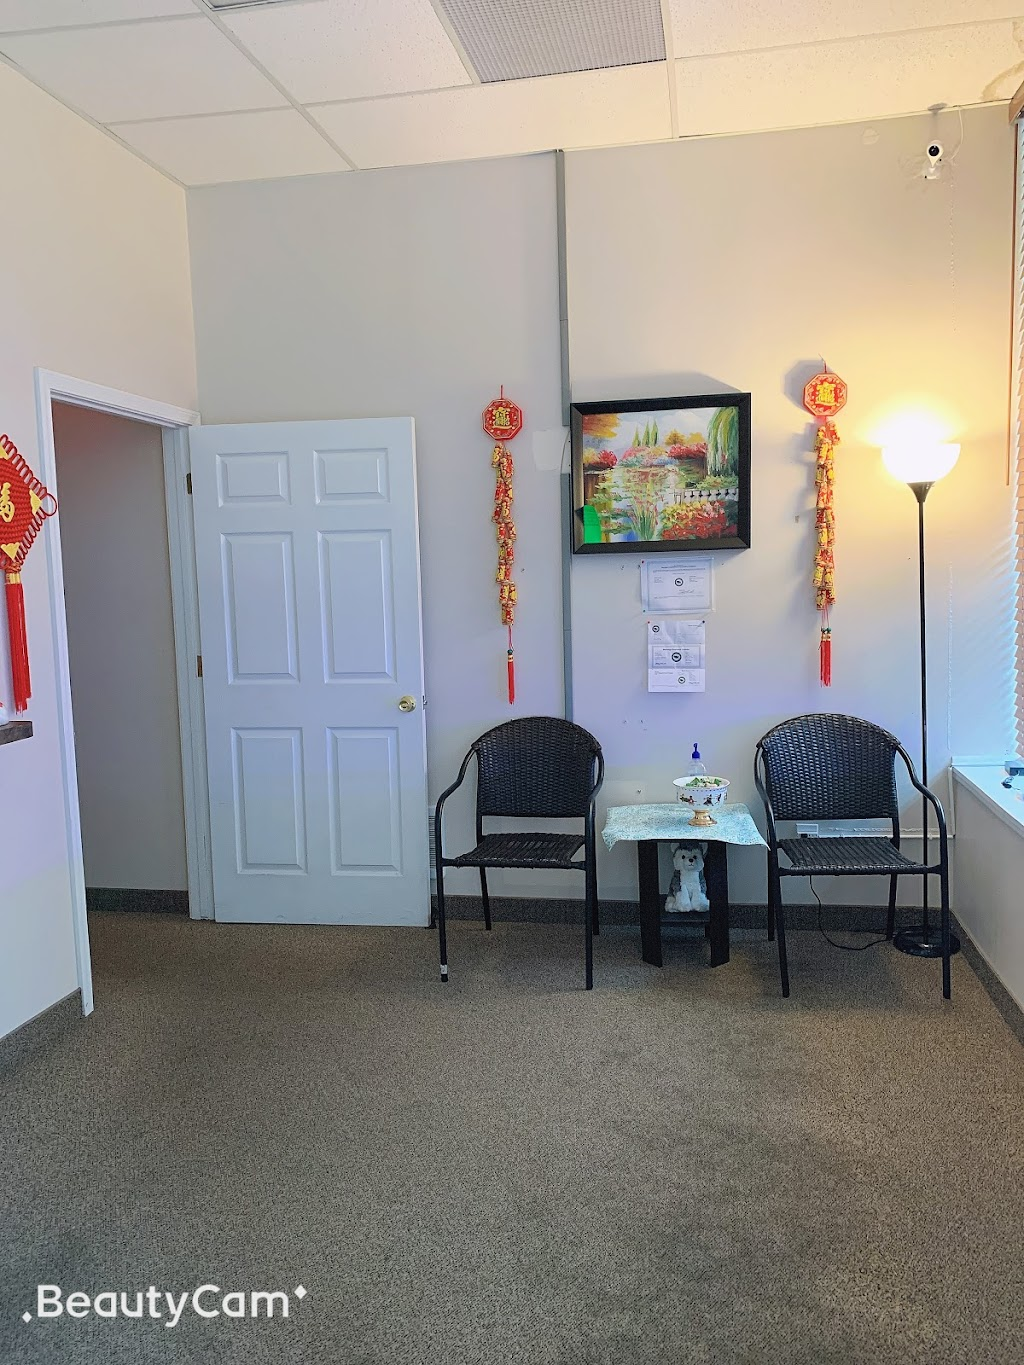 Lotus Asian Spa - physiotherapist  | Photo 3 of 3 | Address: 19640 W 130th St, Strongsville, OH 44136, USA | Phone: (440) 212-5499